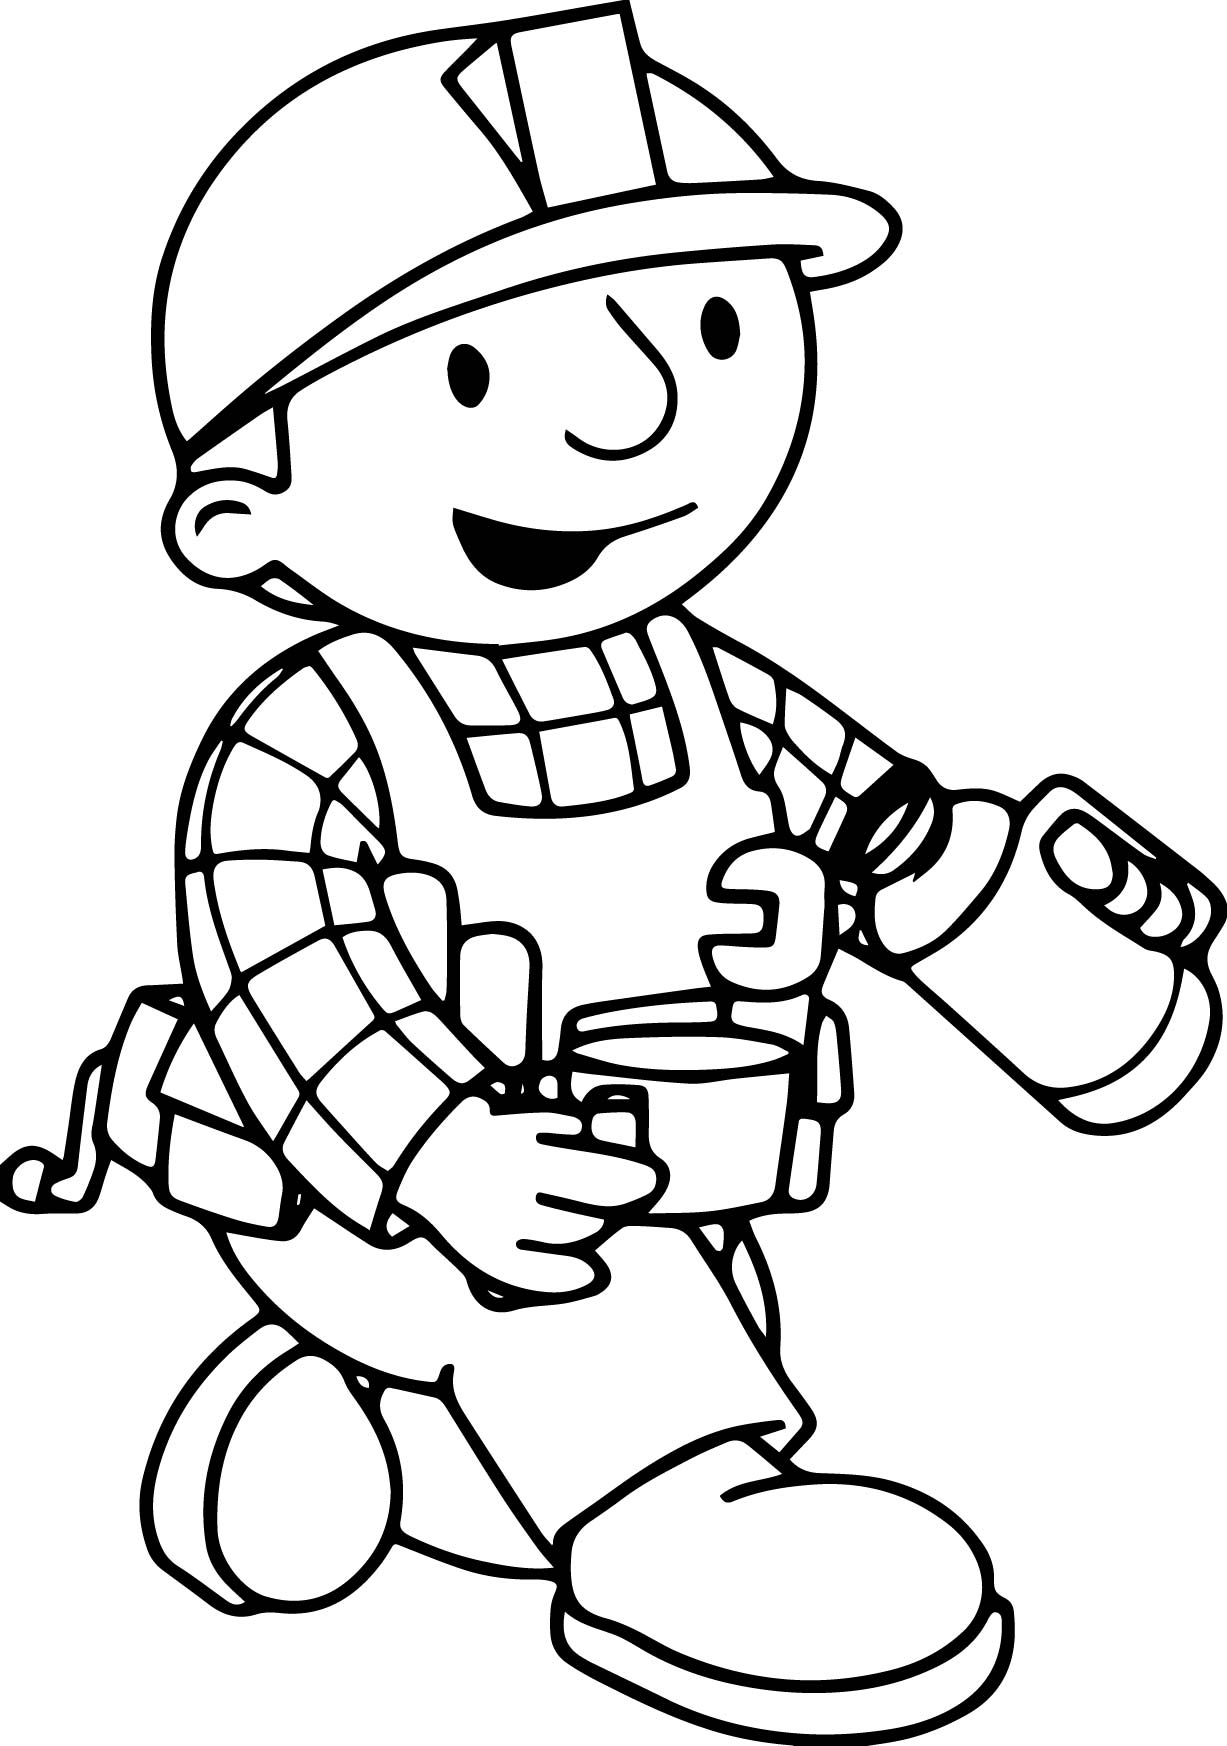 Bob The Builder Drink Tea Coloring Page